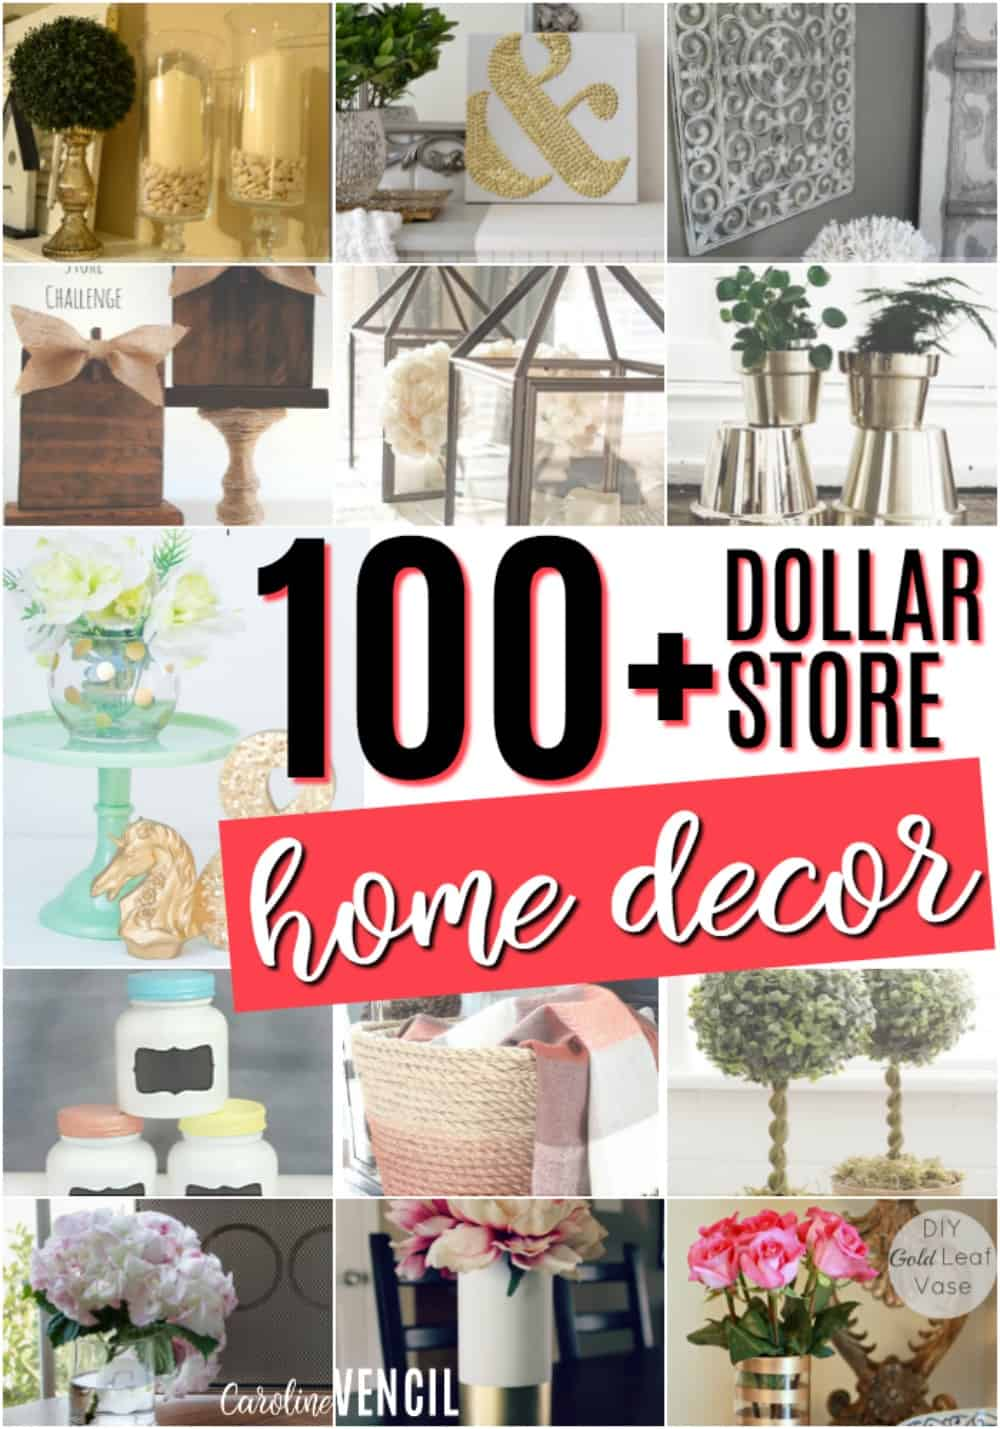 Dollar store home decor ideas caroline vencil - Dollar store home decor ideas pict ...